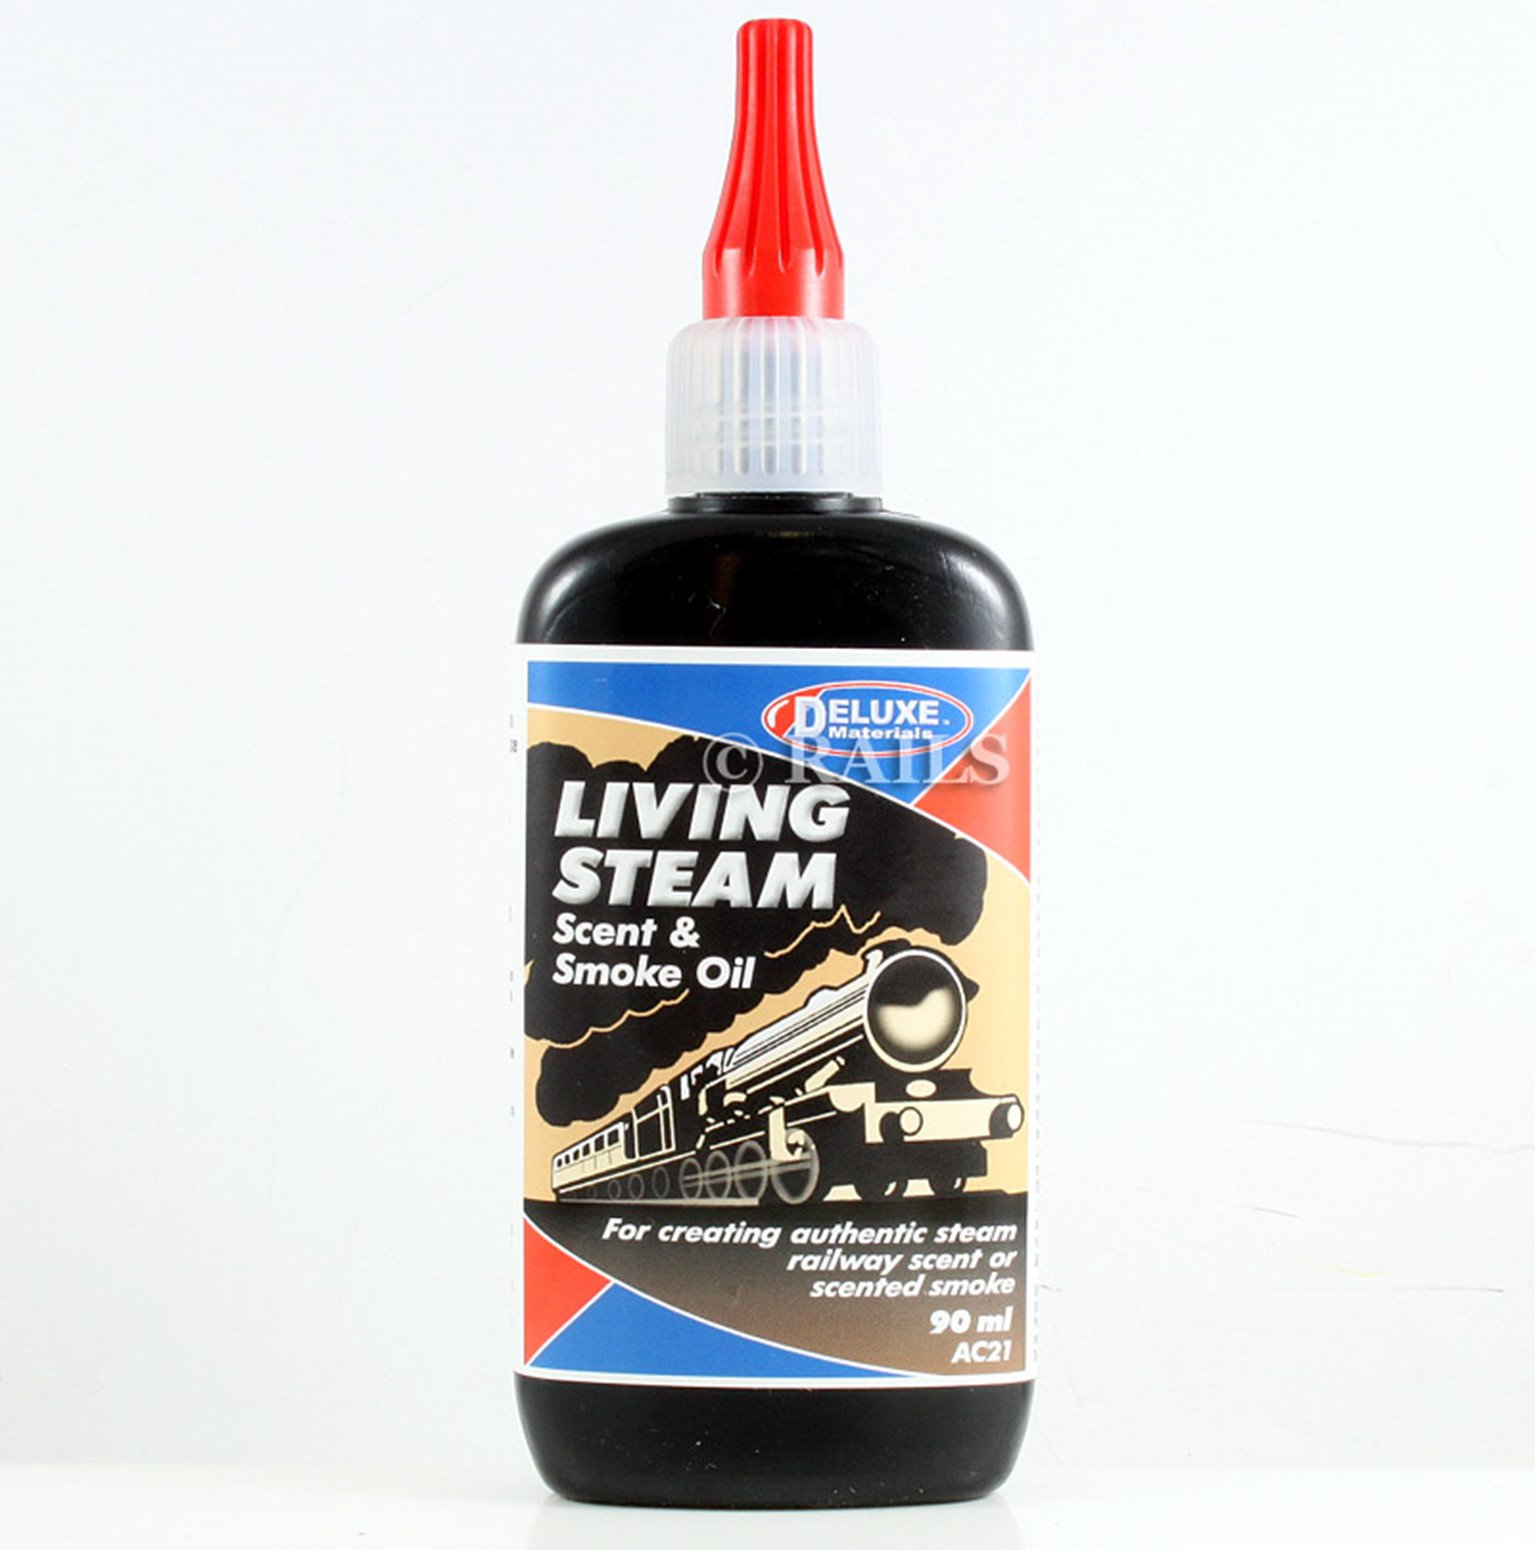 Living Steam Scented Smoke Oil